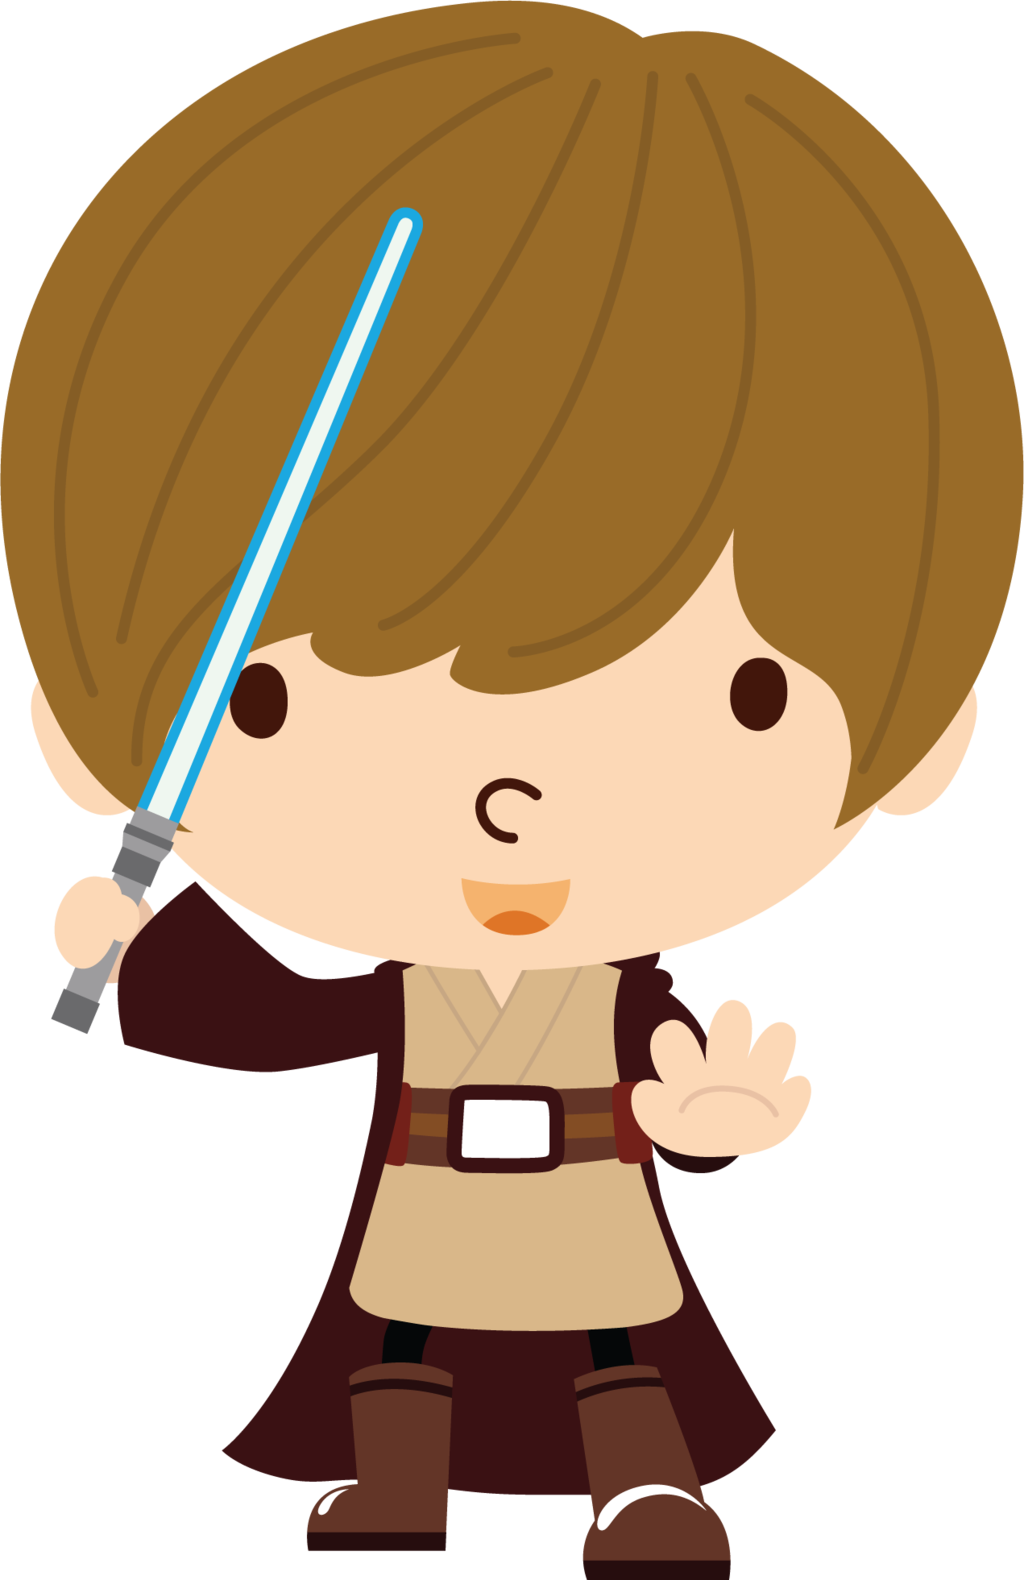 Star Wars clipart #9, Download drawings